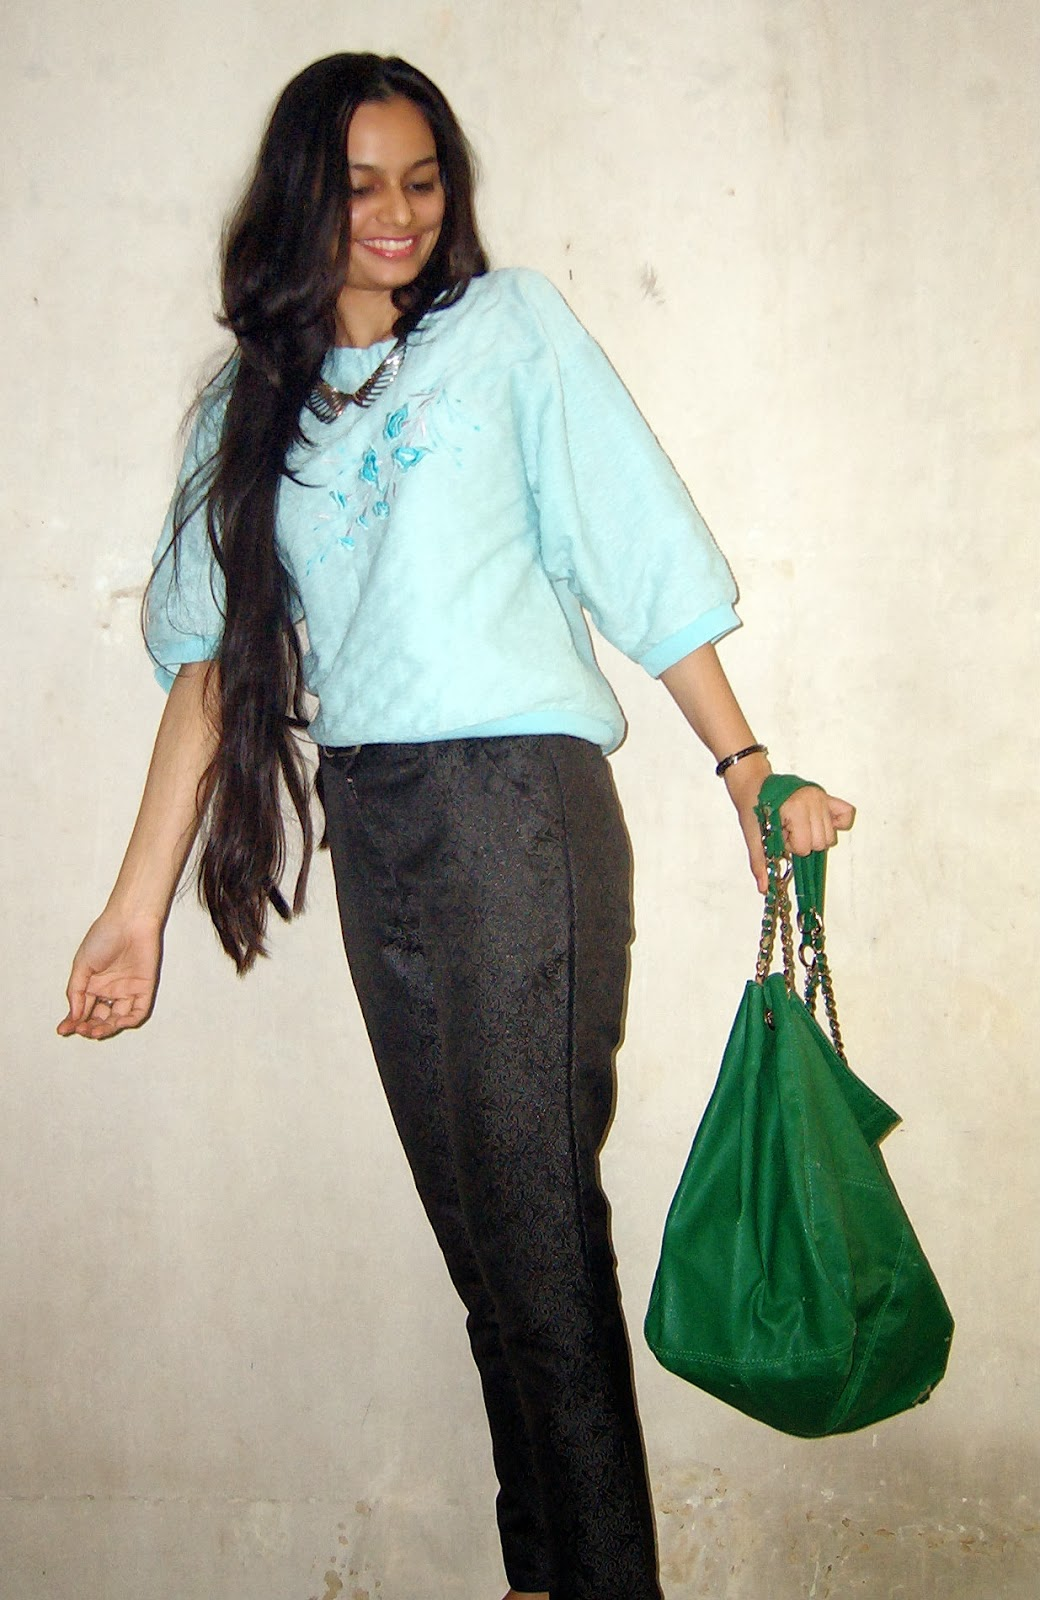 indian rains in january, mumbai rains in january, monsoon friendly outfit ideas, mumbai street style, statement jewelry, blue jumper, vintage clothes